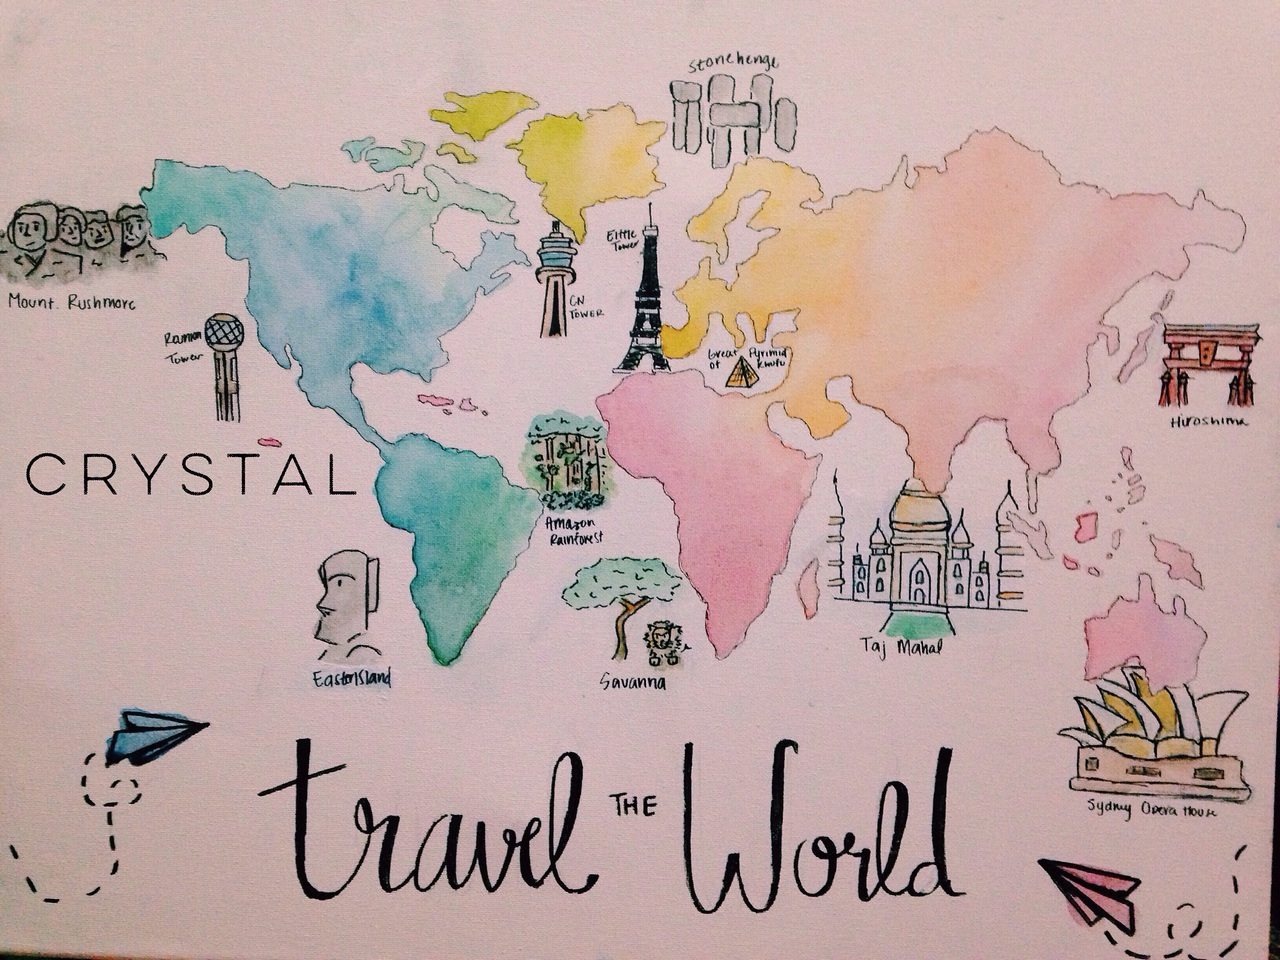 africa, art, asia, canada, cn tower, creative, creativity, drawing, earth, europe, fly, india, japan, landmarks, north america, ombre, painting, paper, paper plane, plan, savannah, sketch, south america, travel, travel the world, united states